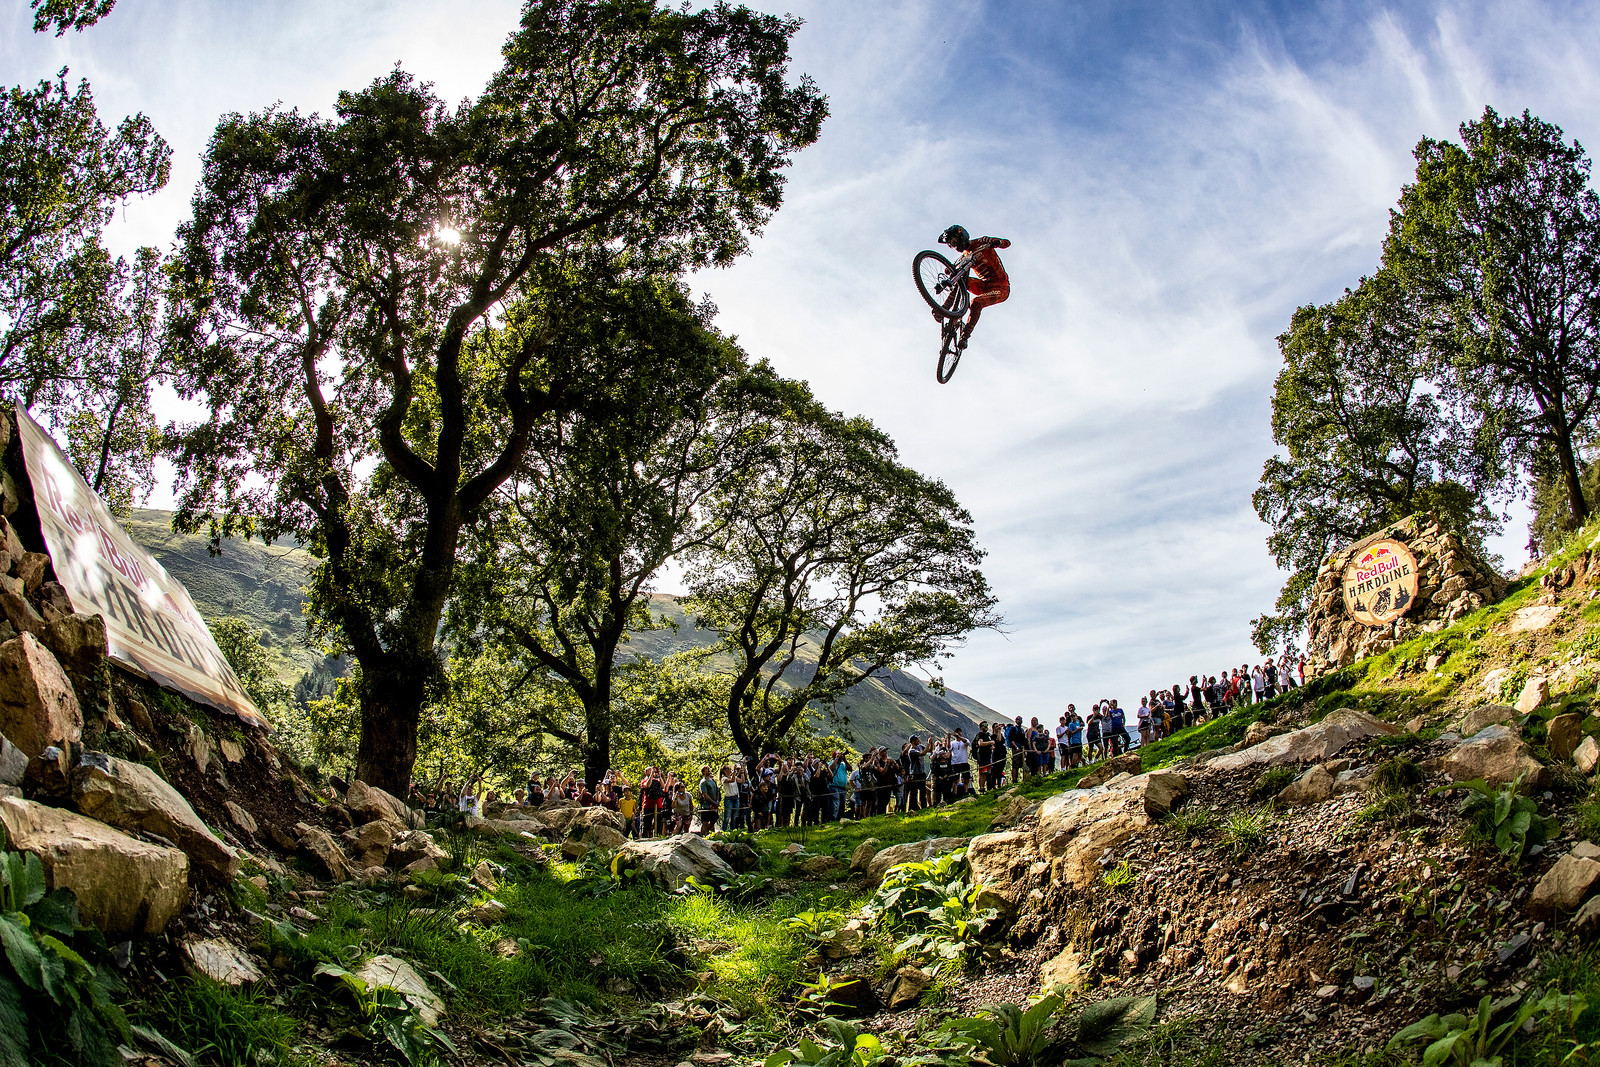 Charlie Hatton - Red Bull Hardline in Photos - Mountain Biking Pictures - Vital MTB